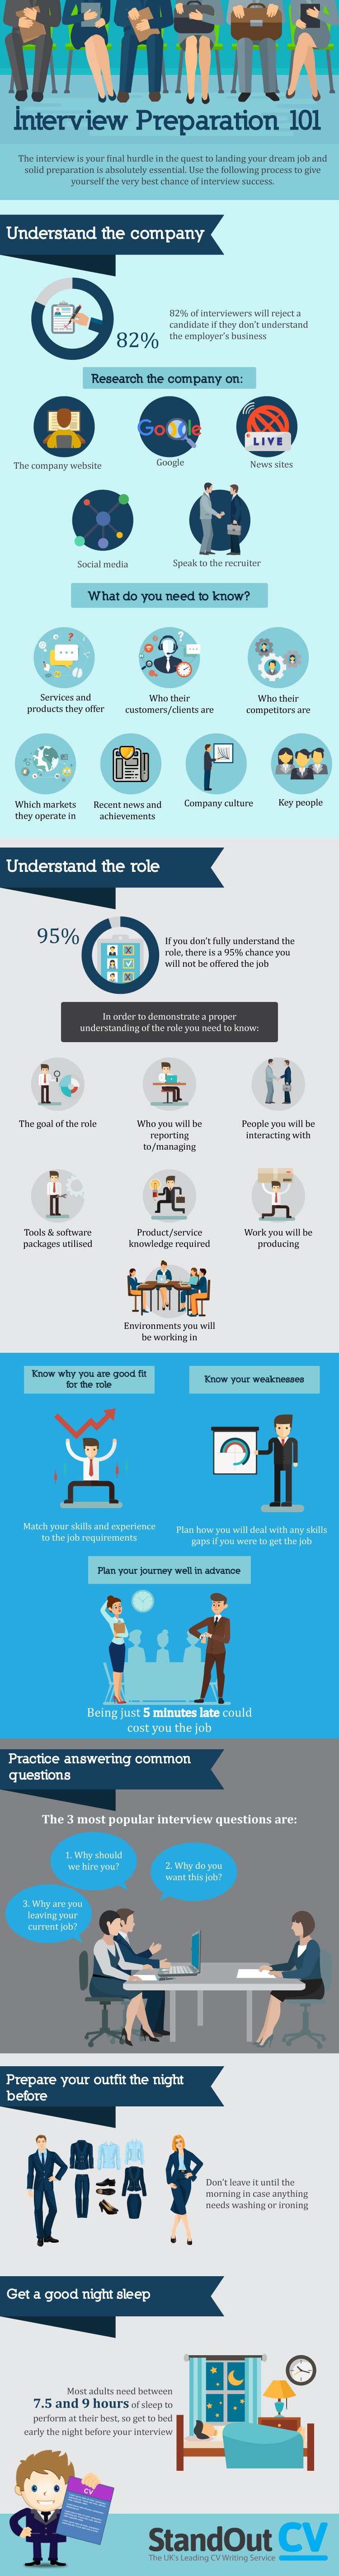 Interview Preparation 101 Infographic